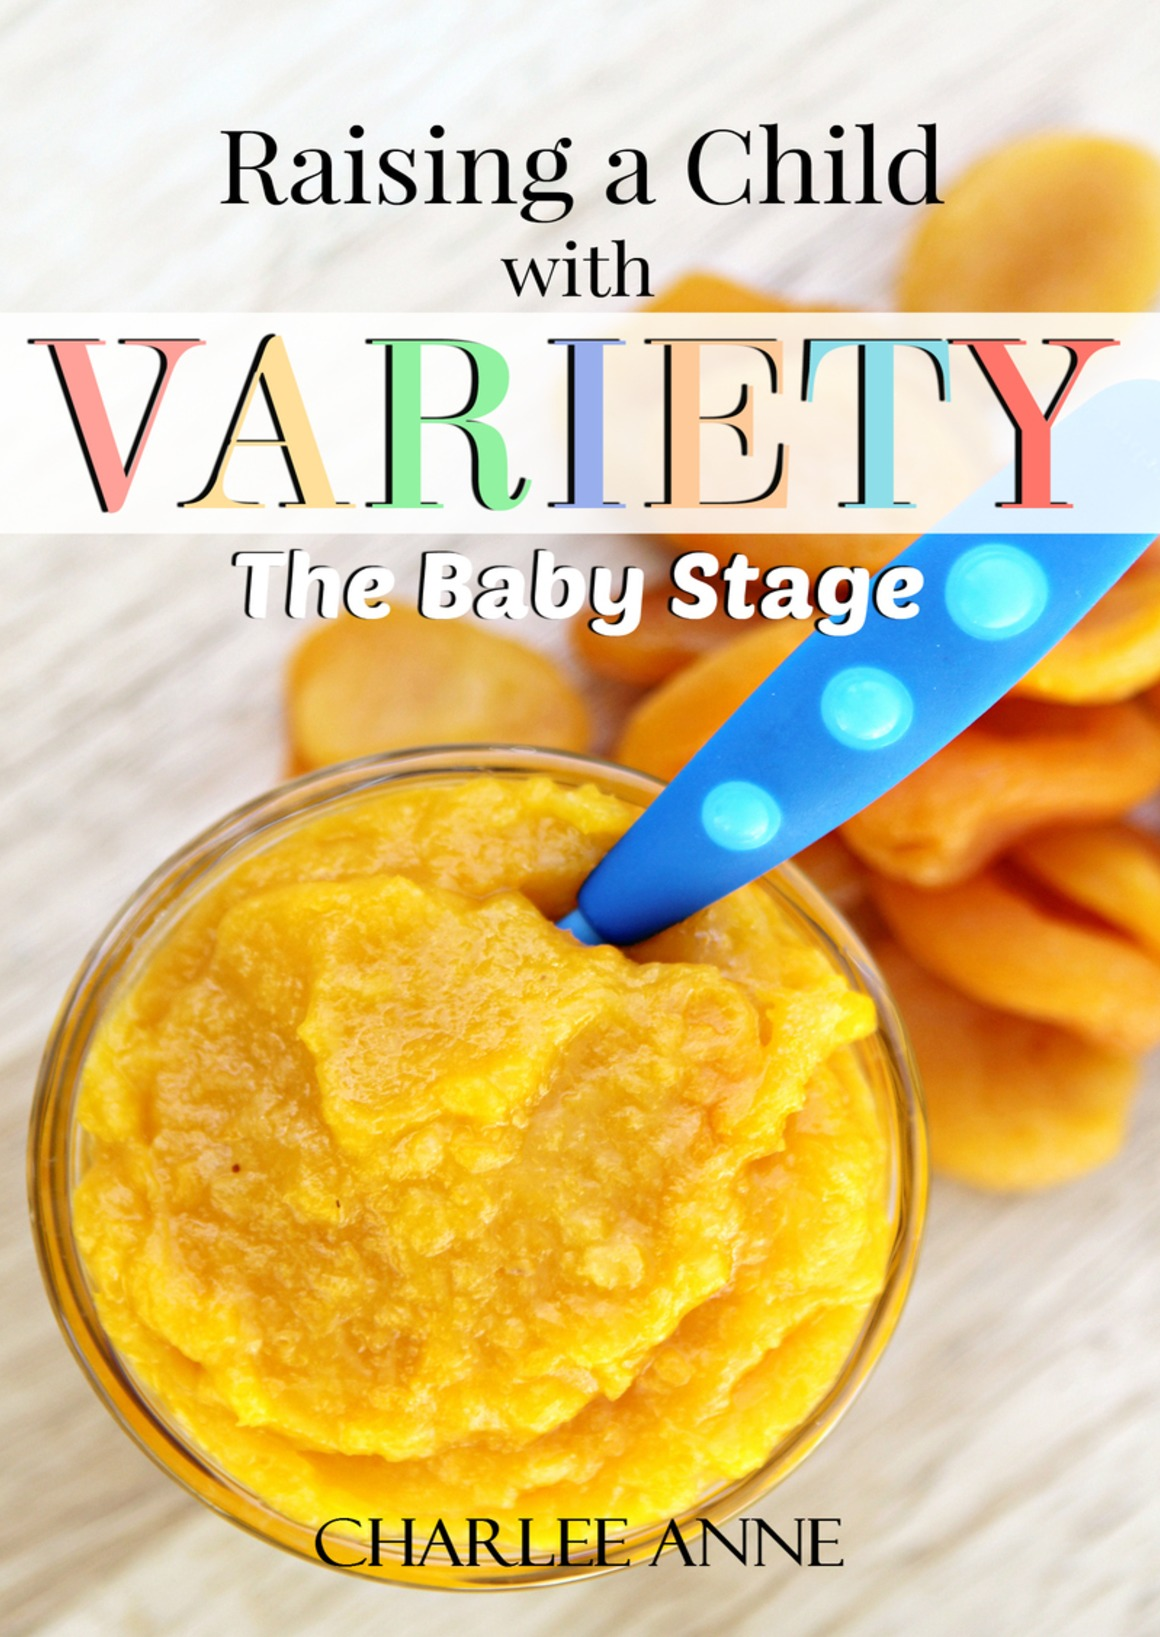 Too busy to make your baby's food at home? The printables that come with this book can help! It's really not rocket science to feed your baby!